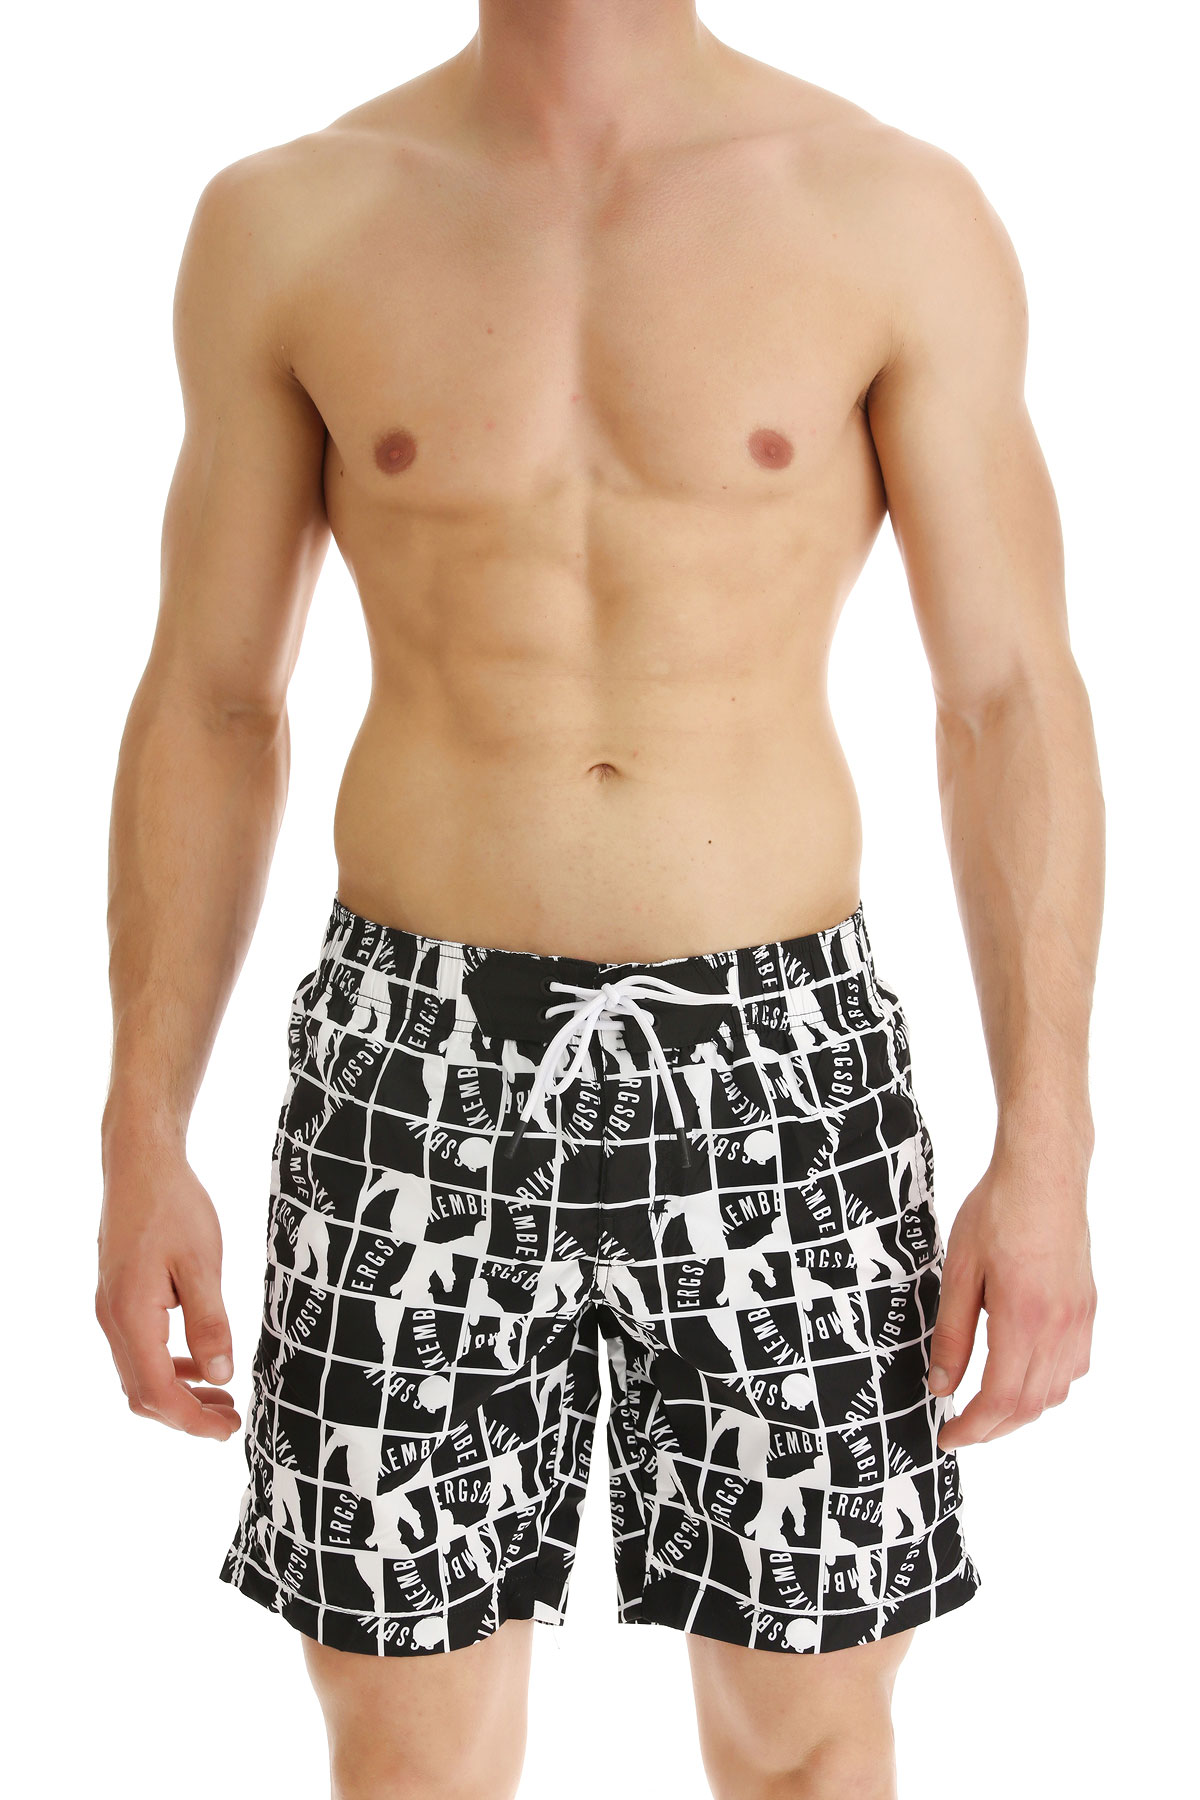 Bikkembergs Swim Shorts Trunks for Men On Sale in Outlet, Black, polyester, 2019, S M XL